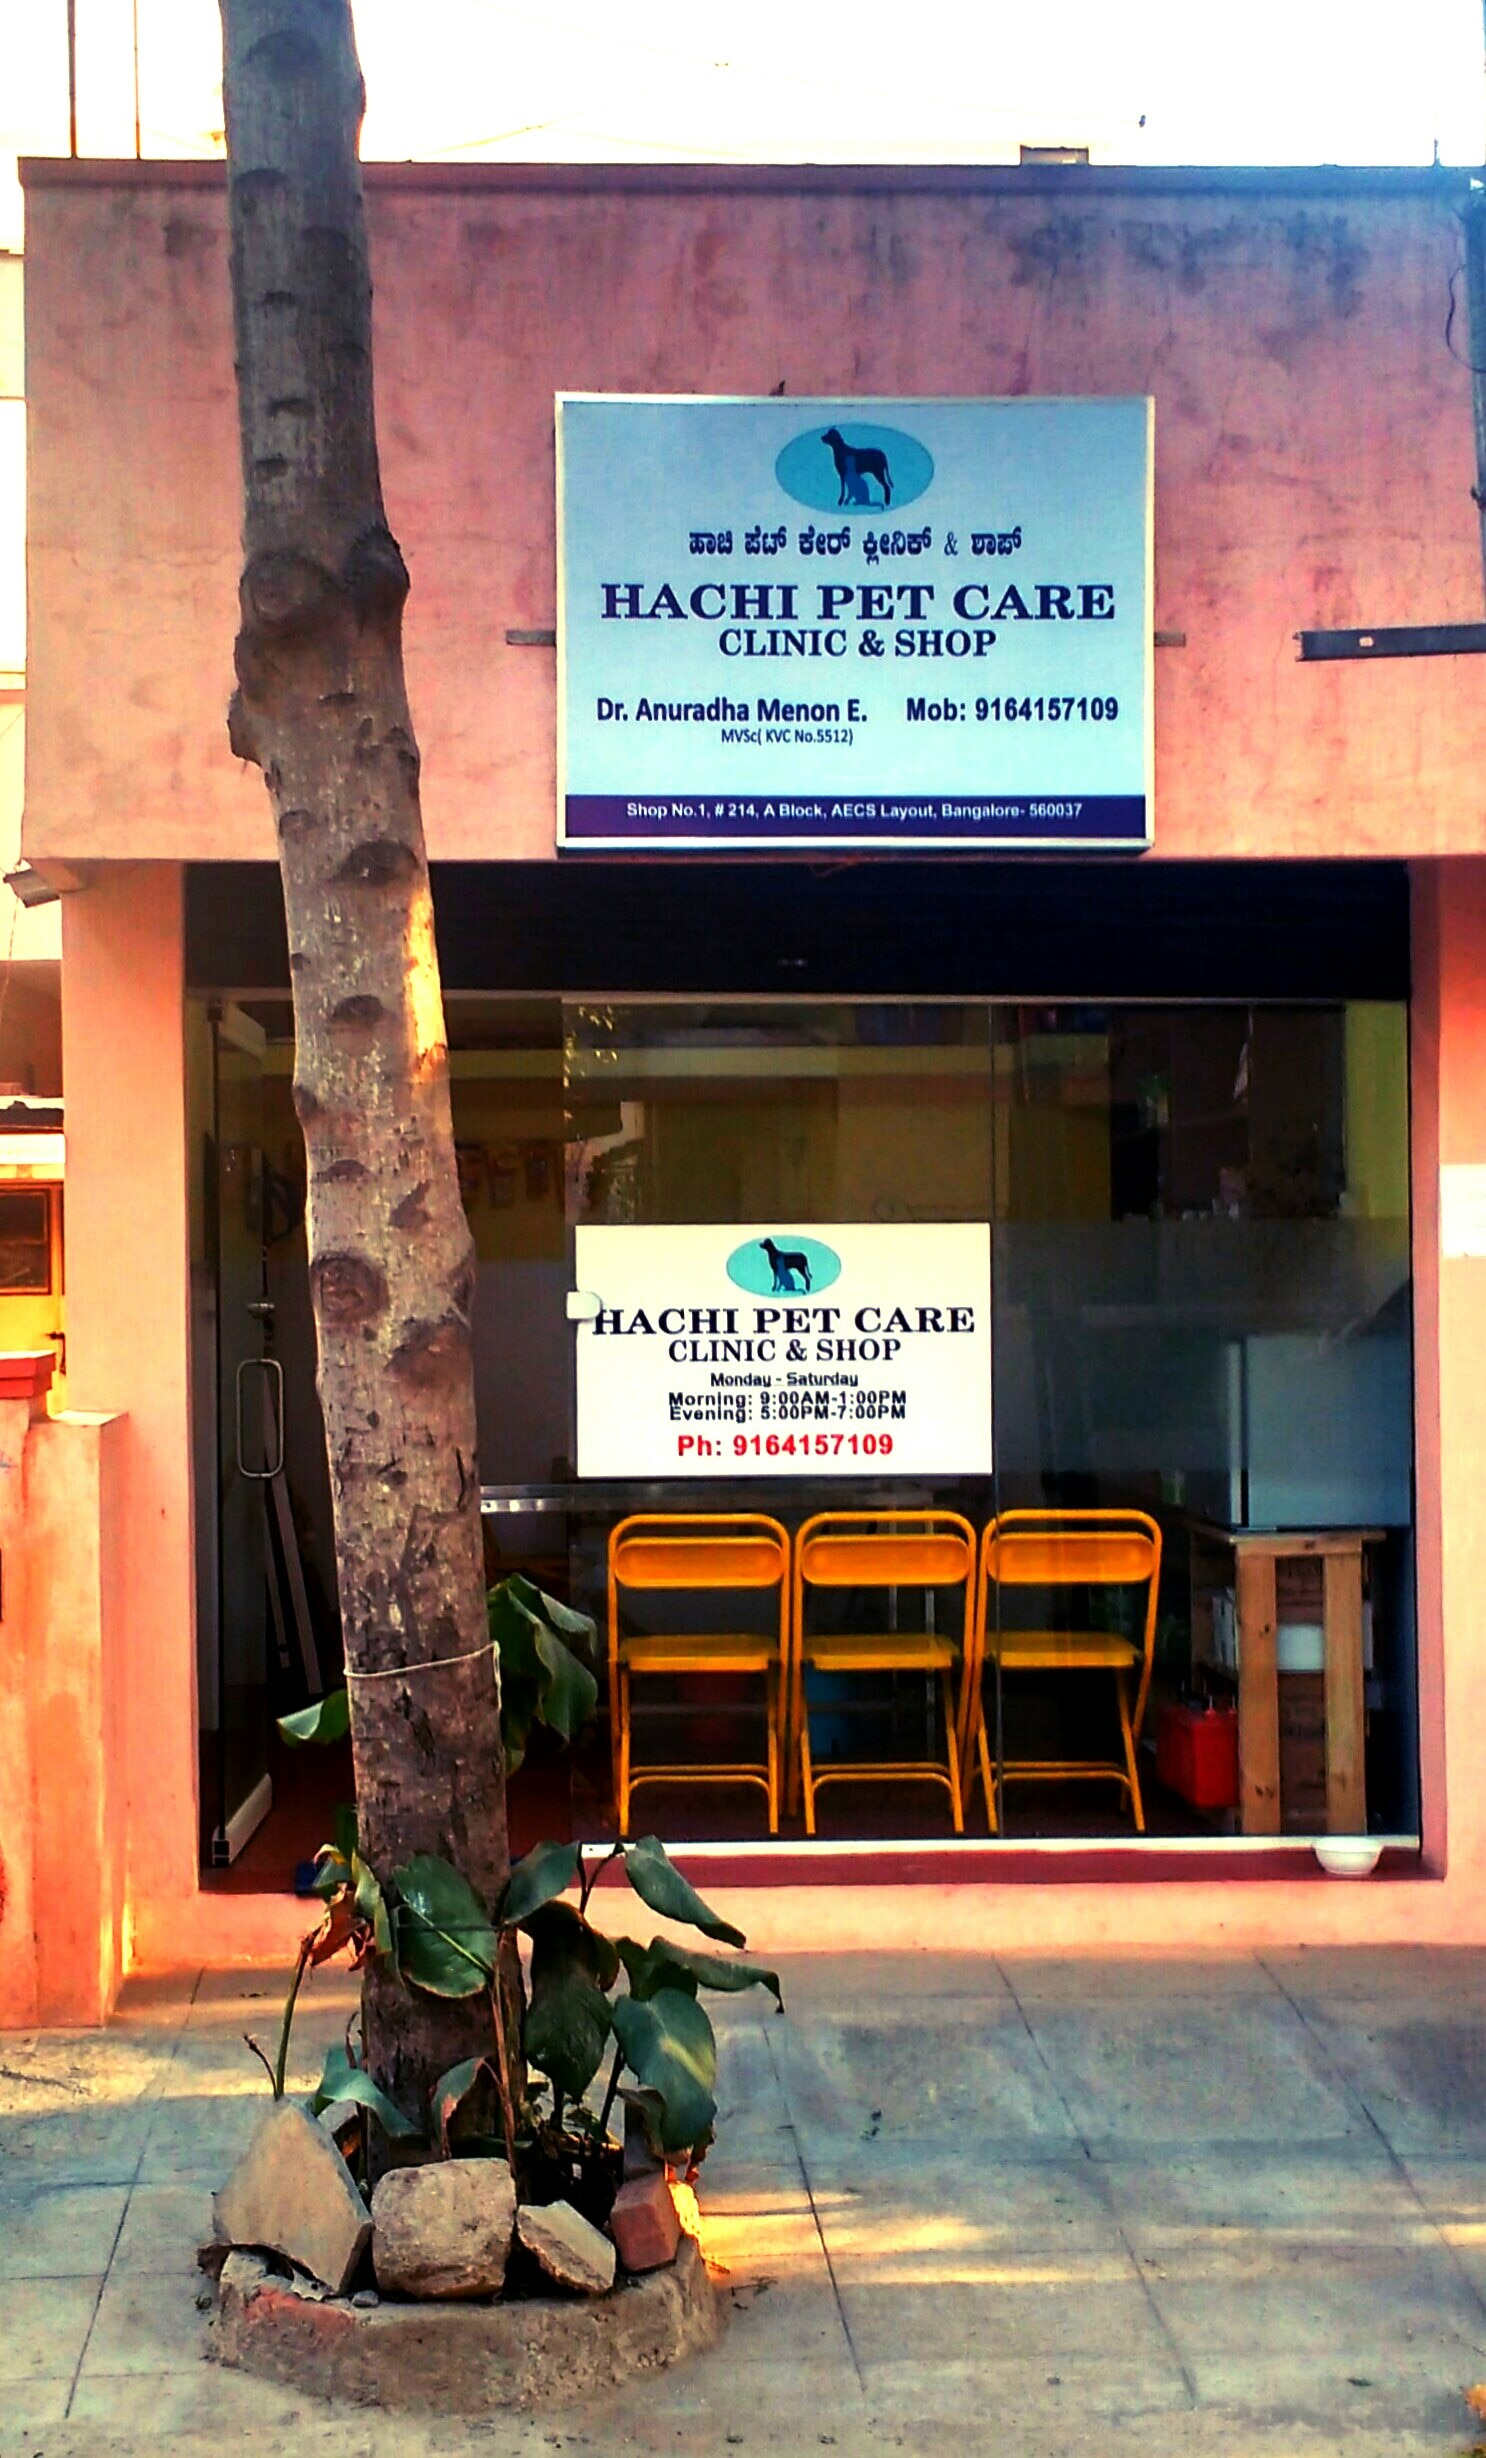 Hachi Pet Care Clinic and Shop